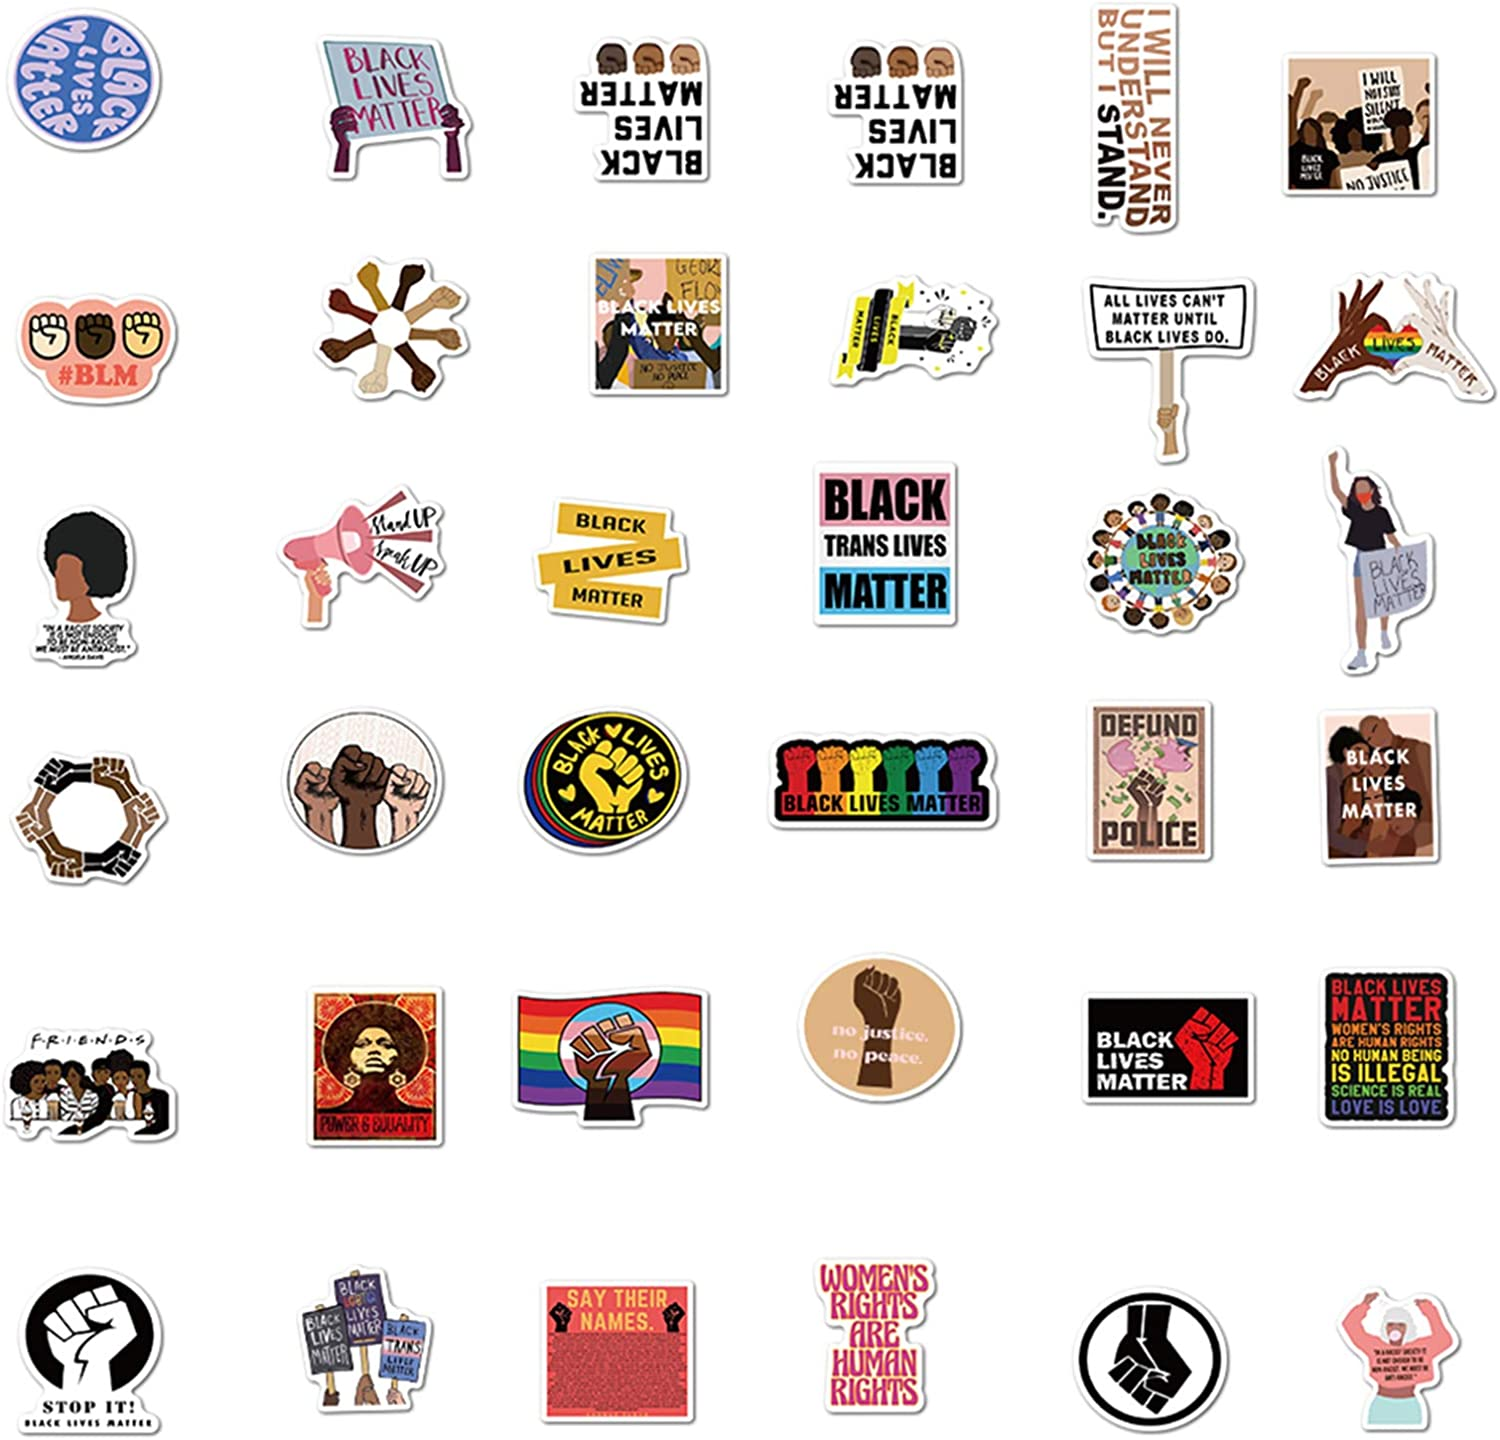 50pcs Black Lives Matter Stickers WROS Human Rights Female Independence Stickers Waterproof Vinyl Stickers for Boys Teens Black Lives Matter